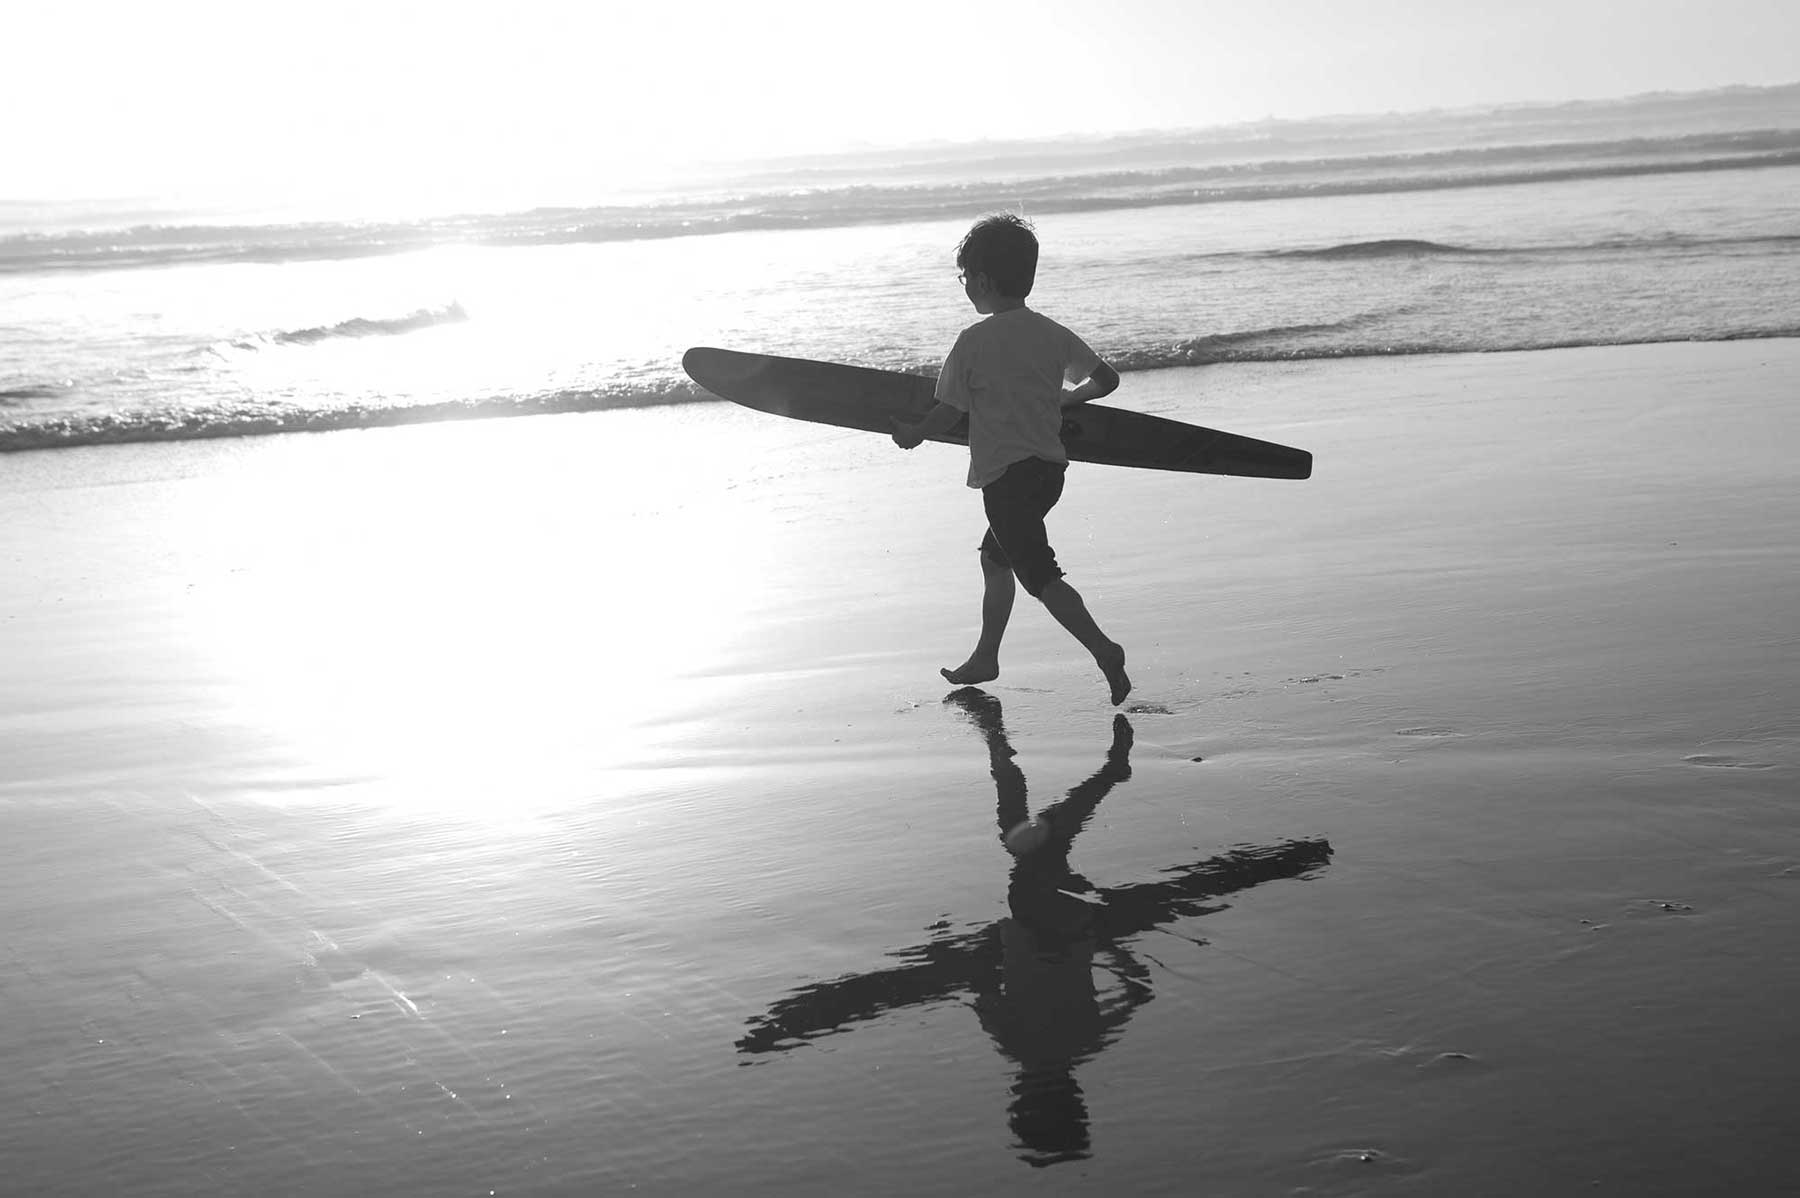 Boy running towards the Ocean with a water ski